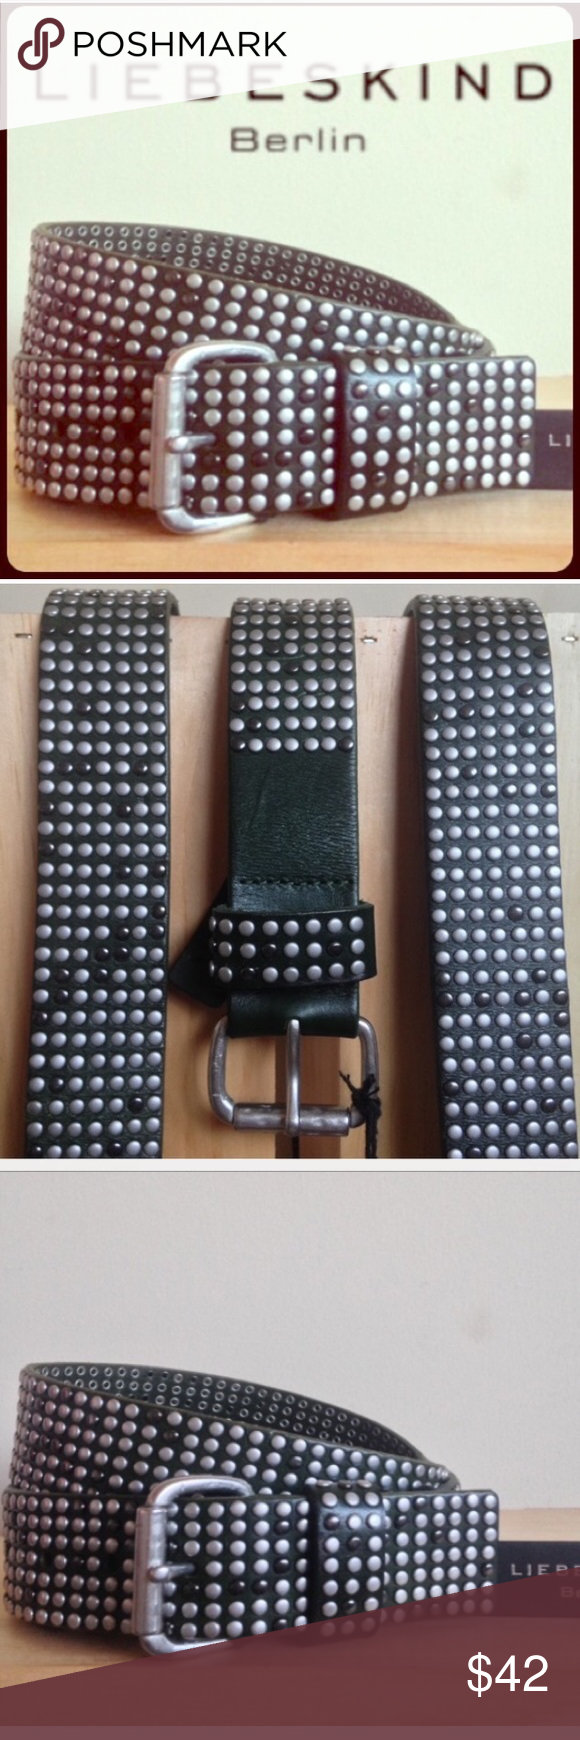 Liebeskind Studded Vintage Vachetta Leather Belt S This leather belt is perfect for that rock'n'roll look. Wear with faded jeans boyfriend cut or skinnies... authentic vintage finish with countless studs. Sturdy leather vintage finish Adorned with various studs Small pin buckle matt brushed finish Adjustable w/5 holes Width: 4 cm 100% cowhide leather                                             Size is 80cm   New with tag Liebeskind Accessories Belts